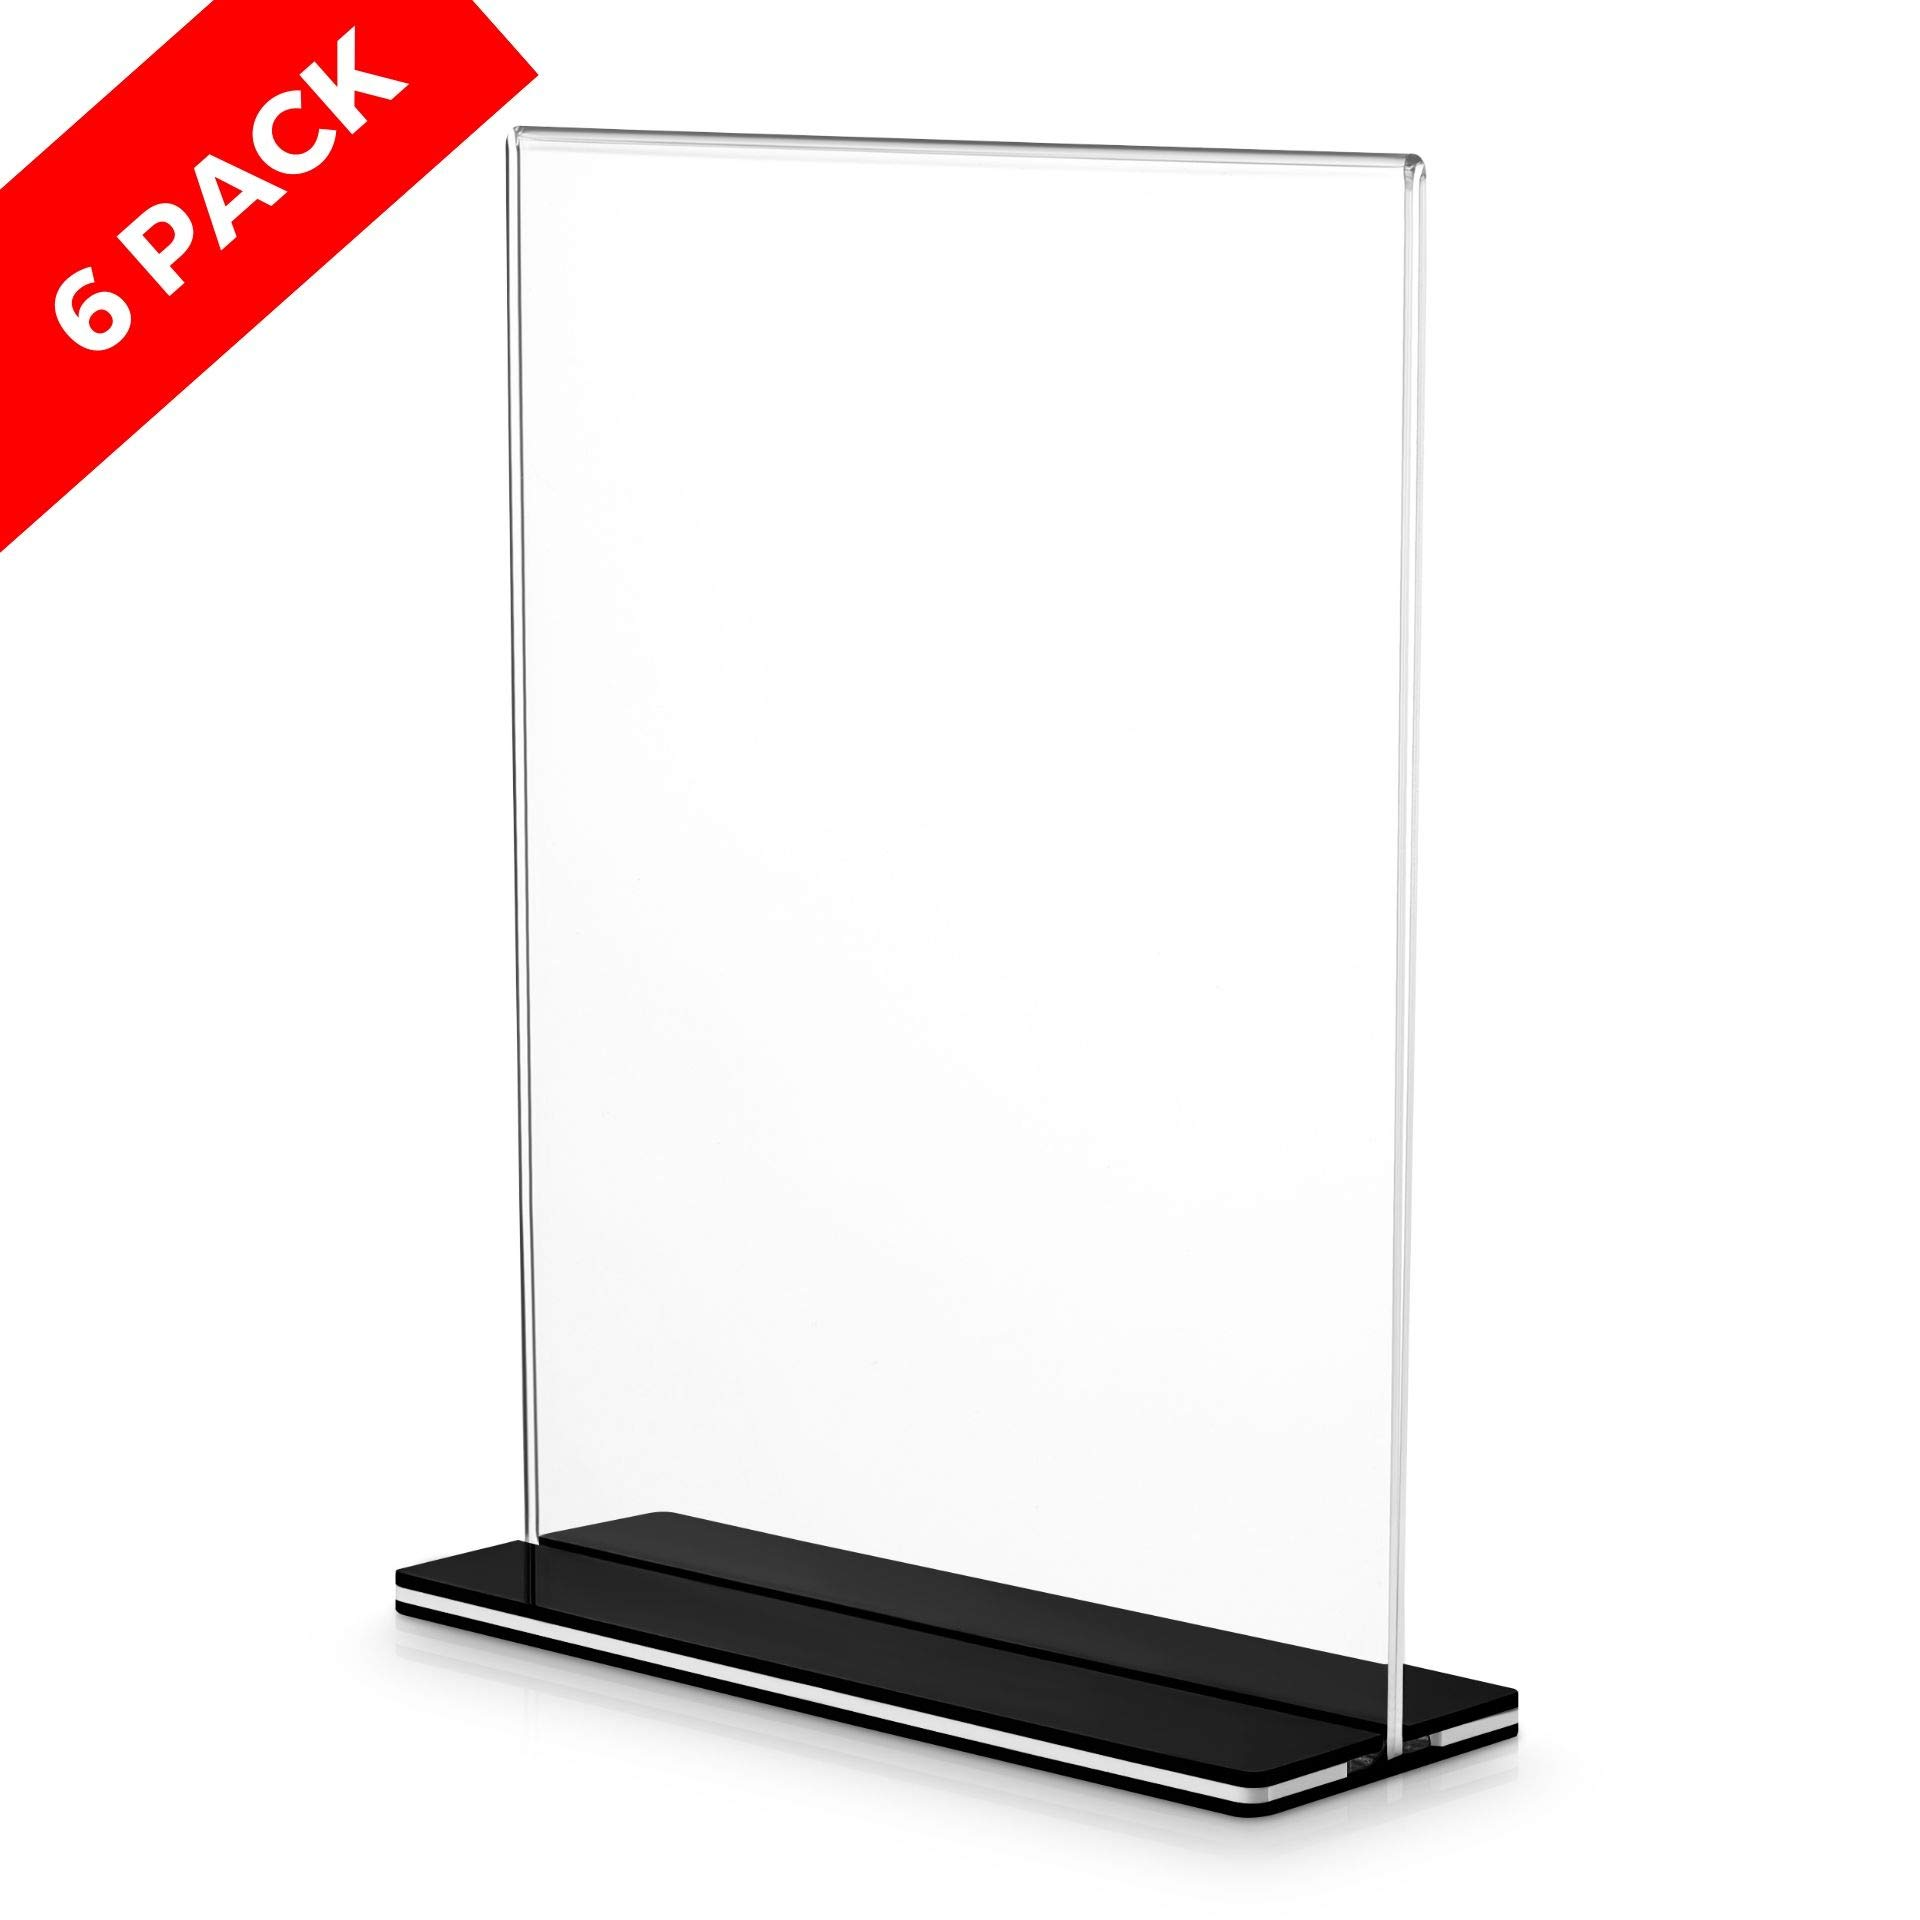 Goodyz-N-Goodz LLC Acrylic Sign Holder with Stand - Self-Standing Double-Sided T-Shape Display - Crystal Clear, Easy to Use - Great for Photos, Menus, Posters, Advertising - 8.5x11-Inch Stand - 6-Pack  Price: $30.95 RATING: